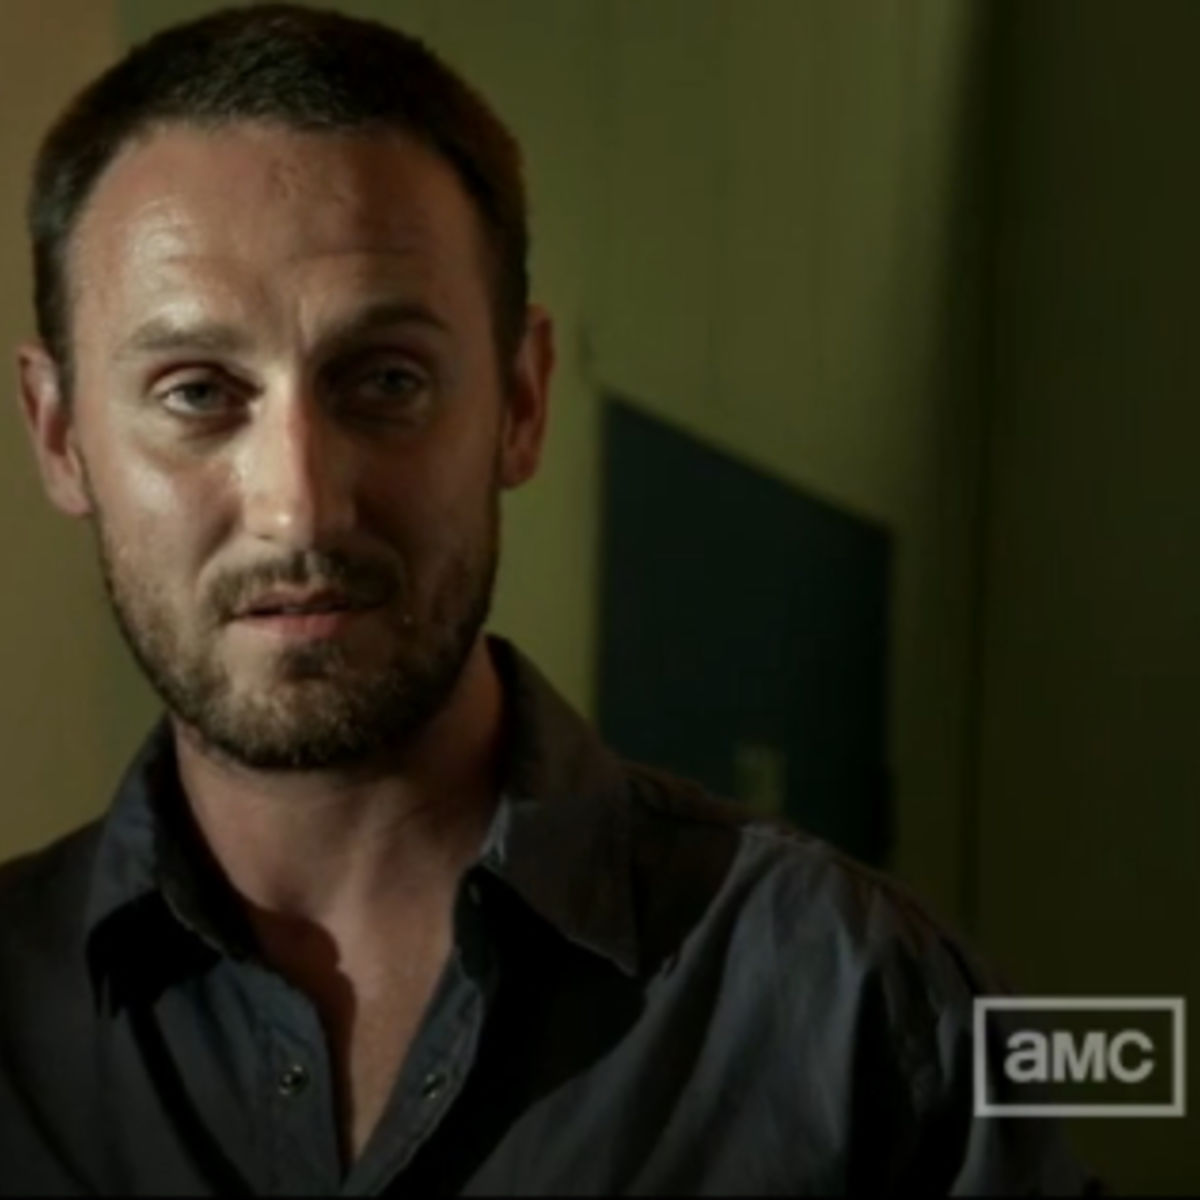 Get ready for Walking Dead S3 with 4 creepy new webisodes  sc 1 st  Syfy & Get ready for Walking Dead S3 with 4 creepy new webisodes | SYFY WIRE